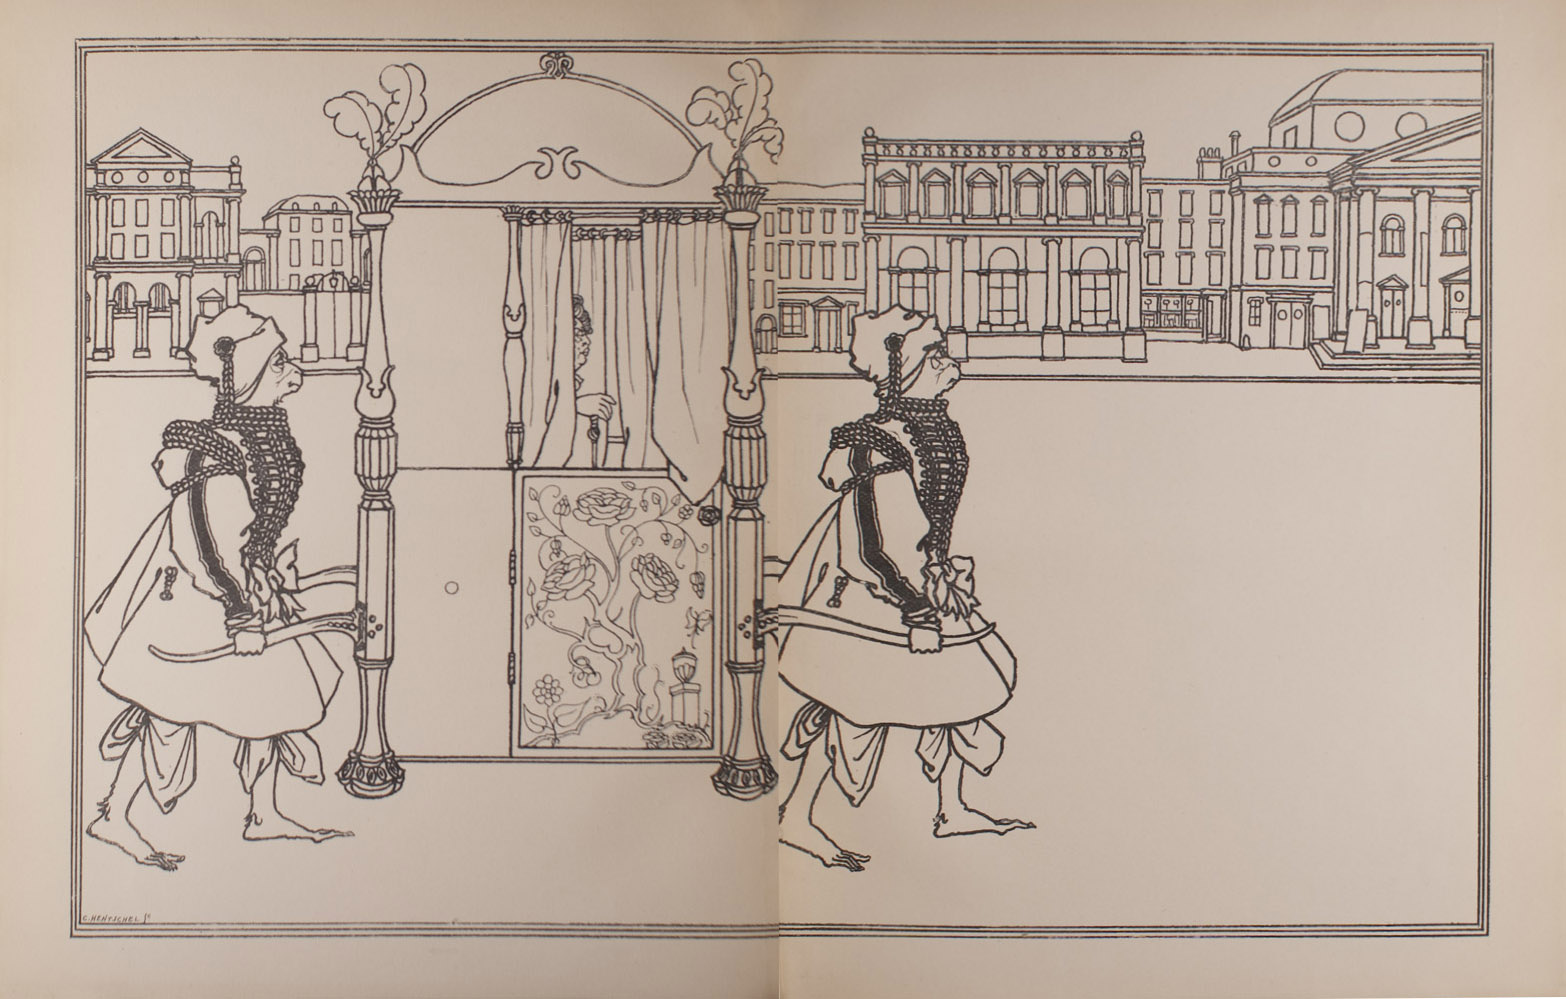 The image is of two apelike figures carrying a sedan chair A figure sits in the chair mostly hidden by curtains The chair is decorated with a rose pattern on the door and feathers extending from the posts The apelike figures are wearing embellished attire with braided coats bows and decorated headpieces They are barefoot In the background there is a city street with buildings The image is vertically displayed and spans two pages a double page opening